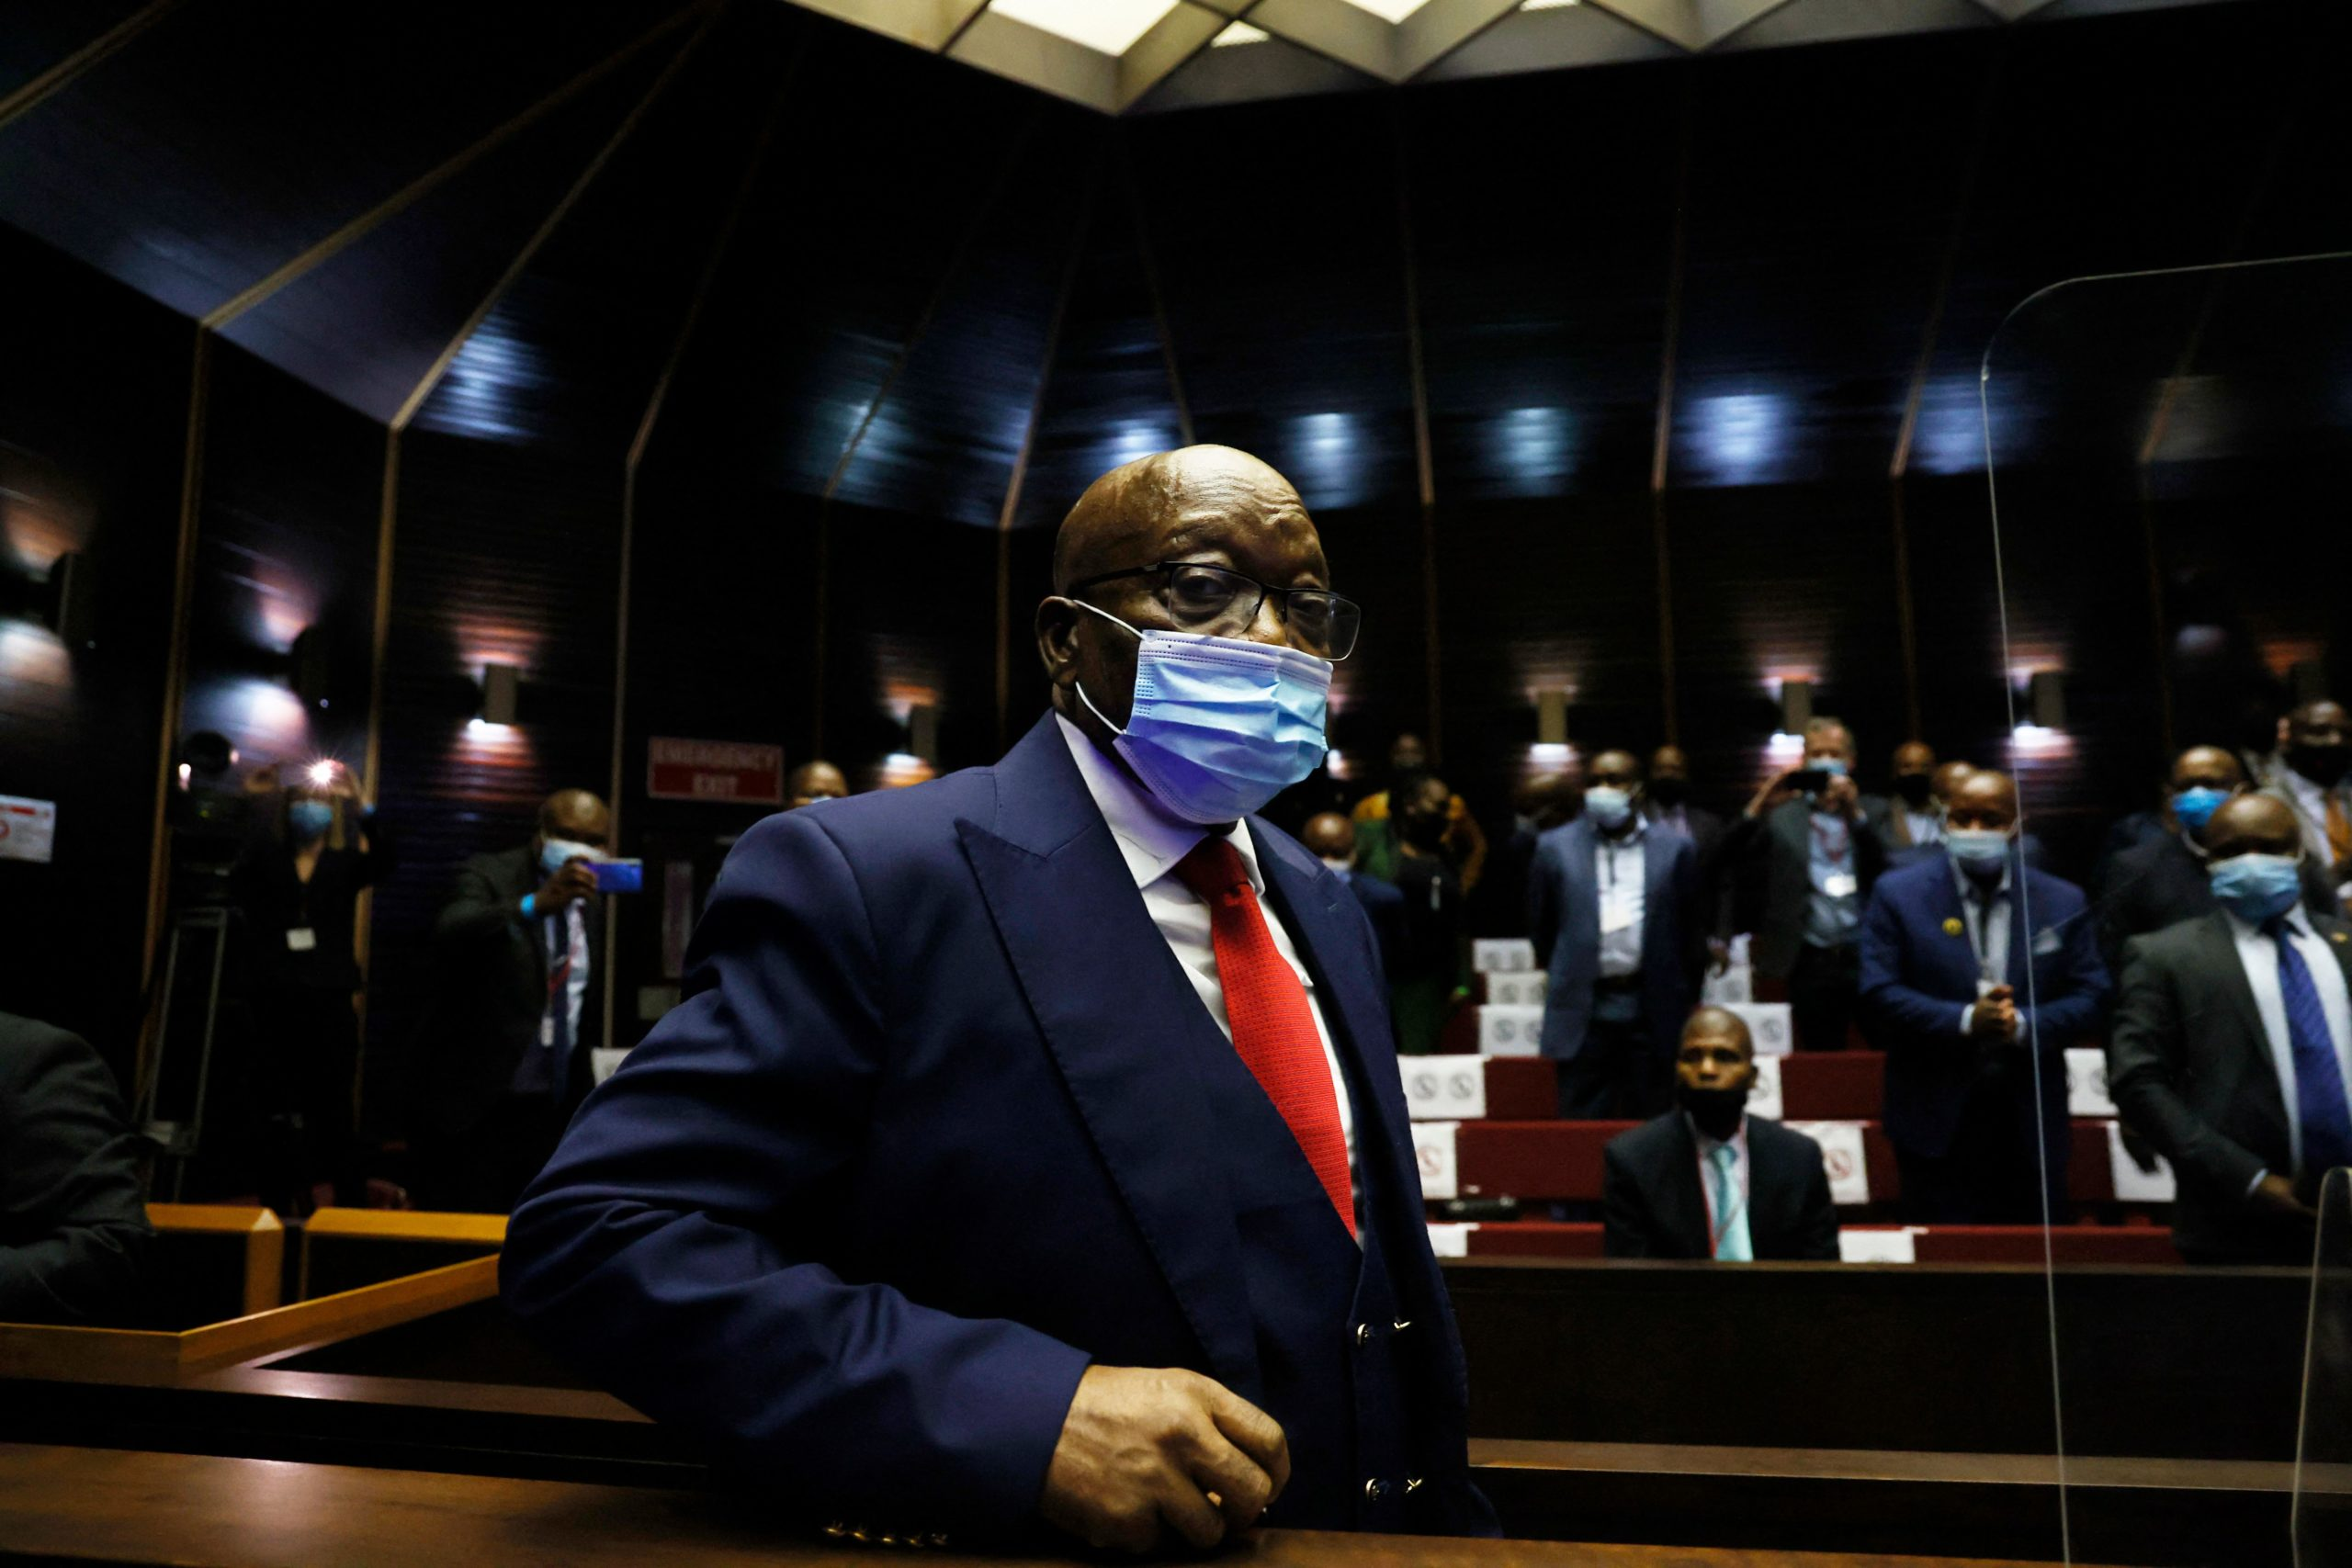 Former South African President Jacob Zuma arrives ahead of his corruption trial at the Pietermaritzburg High Court in Pietermaritzburg, South Africa, on May 26, 2021. - Jacob Zuma faces 16 charges of fraud, graft and racketeering relating to a 1999 purchase of fighter jets, patrol boats and military gear from five European arms firms for 30 billion rand, then the equivalent of nearly $5 billion. He is accused of accepting bribes totalling four million rand from one of the firms, French defence giant Thales. (Photo by PHILL MAGAKOE / POOL / AFP) (Photo by PHILL MAGAKOE/POOL/AFP via Getty Images)